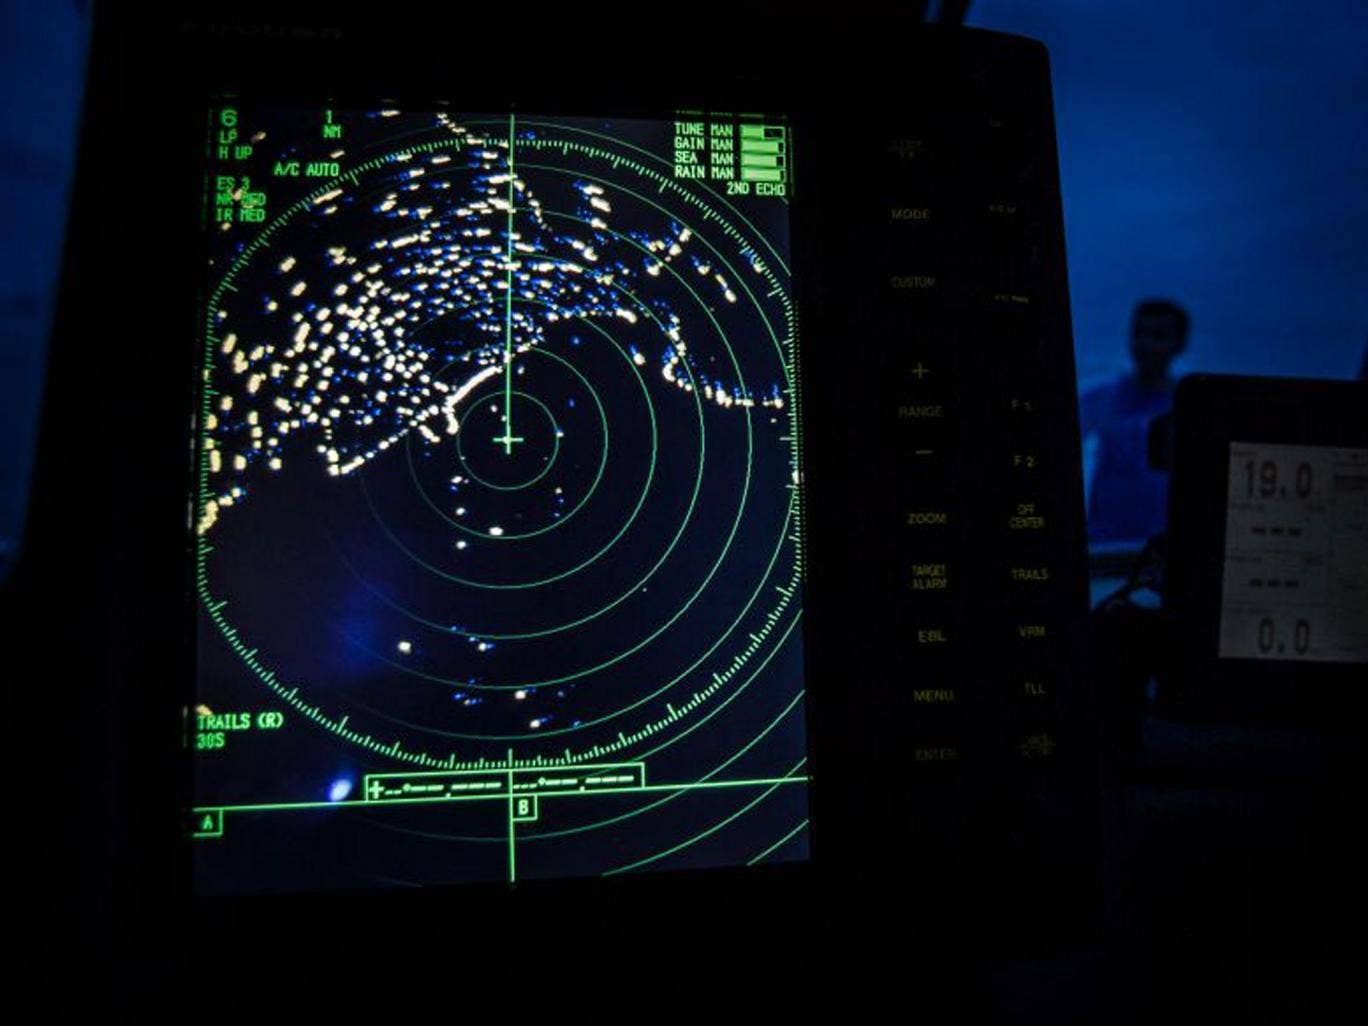 A navigational radar on Indonesia's National Search and Rescue boat shows details during a search in the Andaman sea